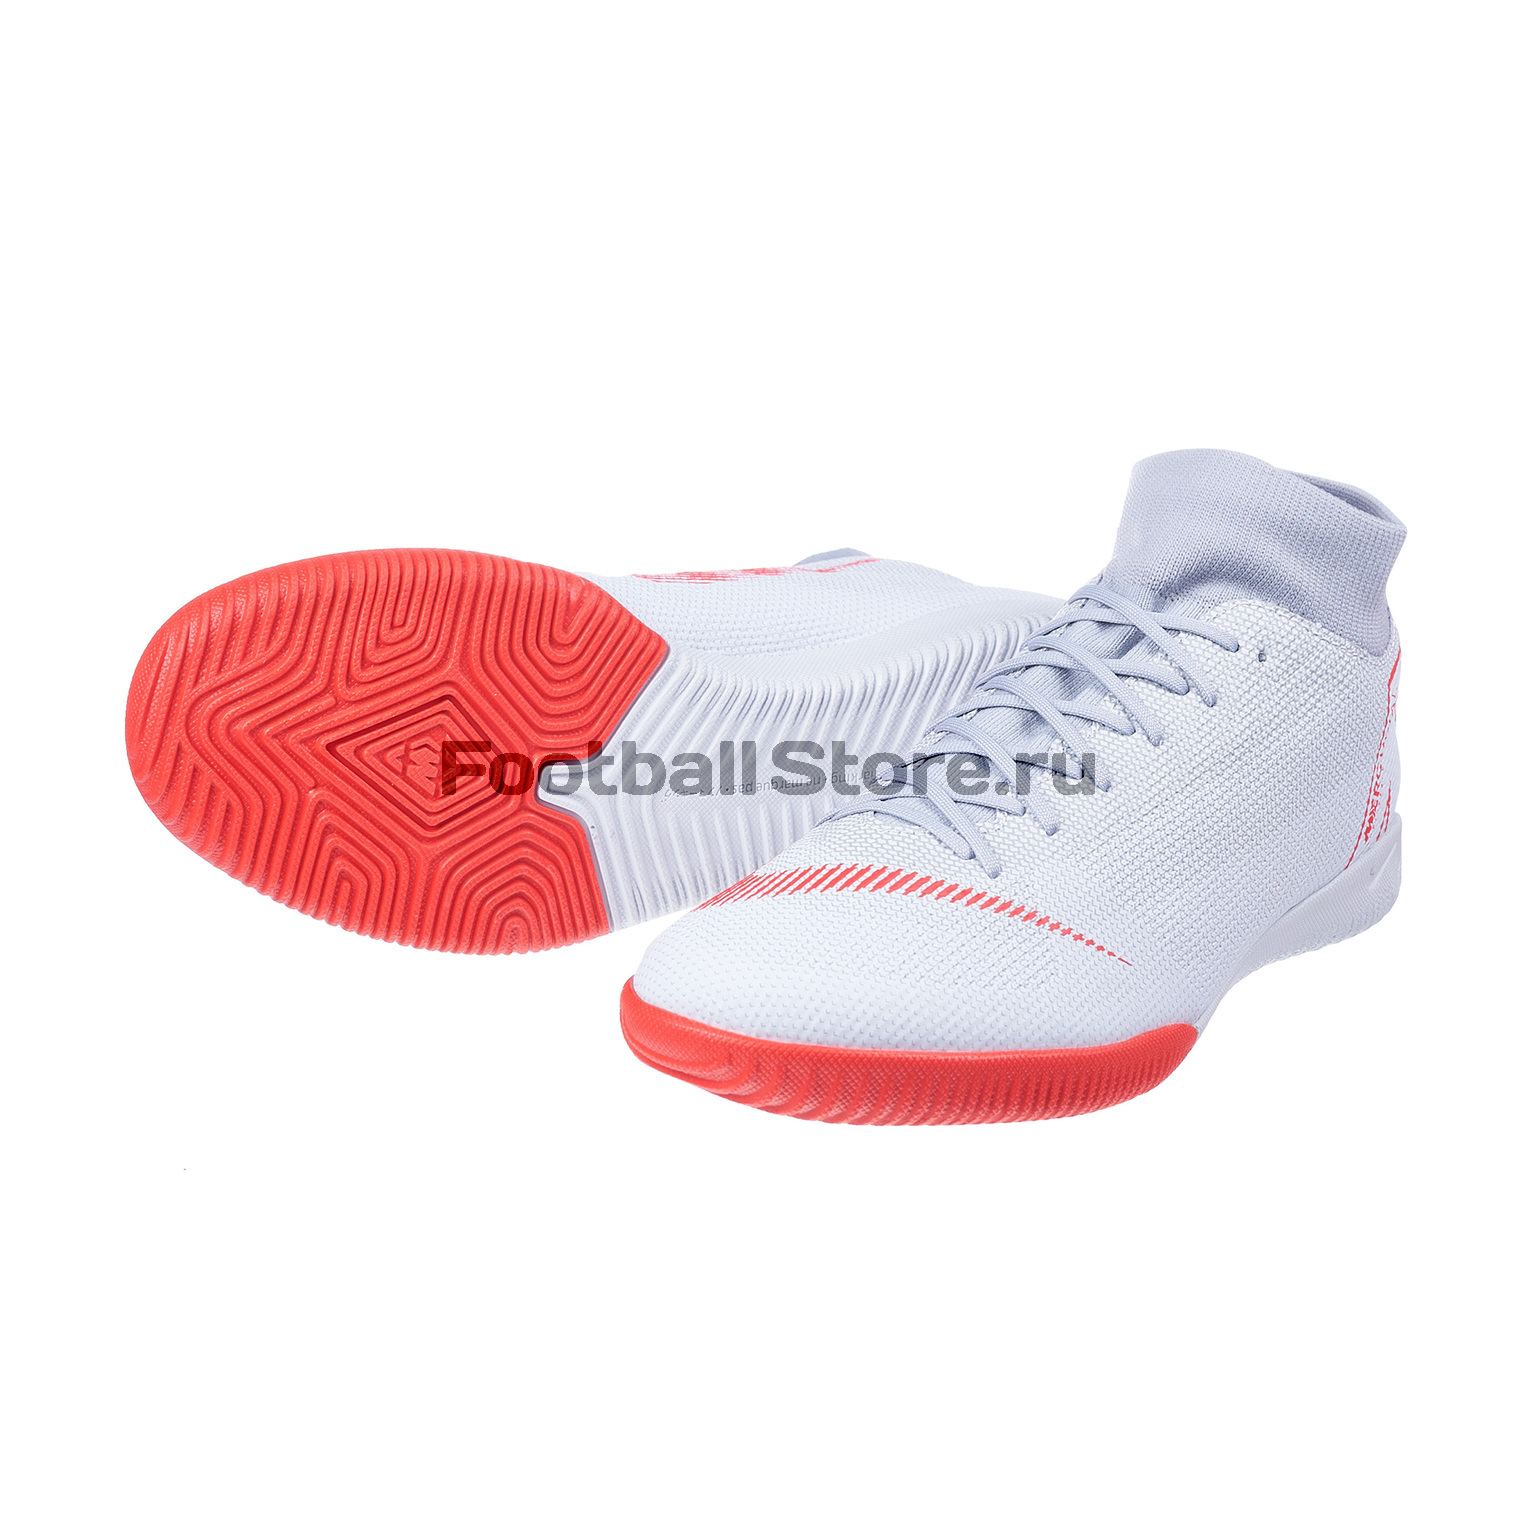 Футзалки Nike Superfly 6 Academy IC AH7369-060 брюки спортивные nike 2013 544989 060